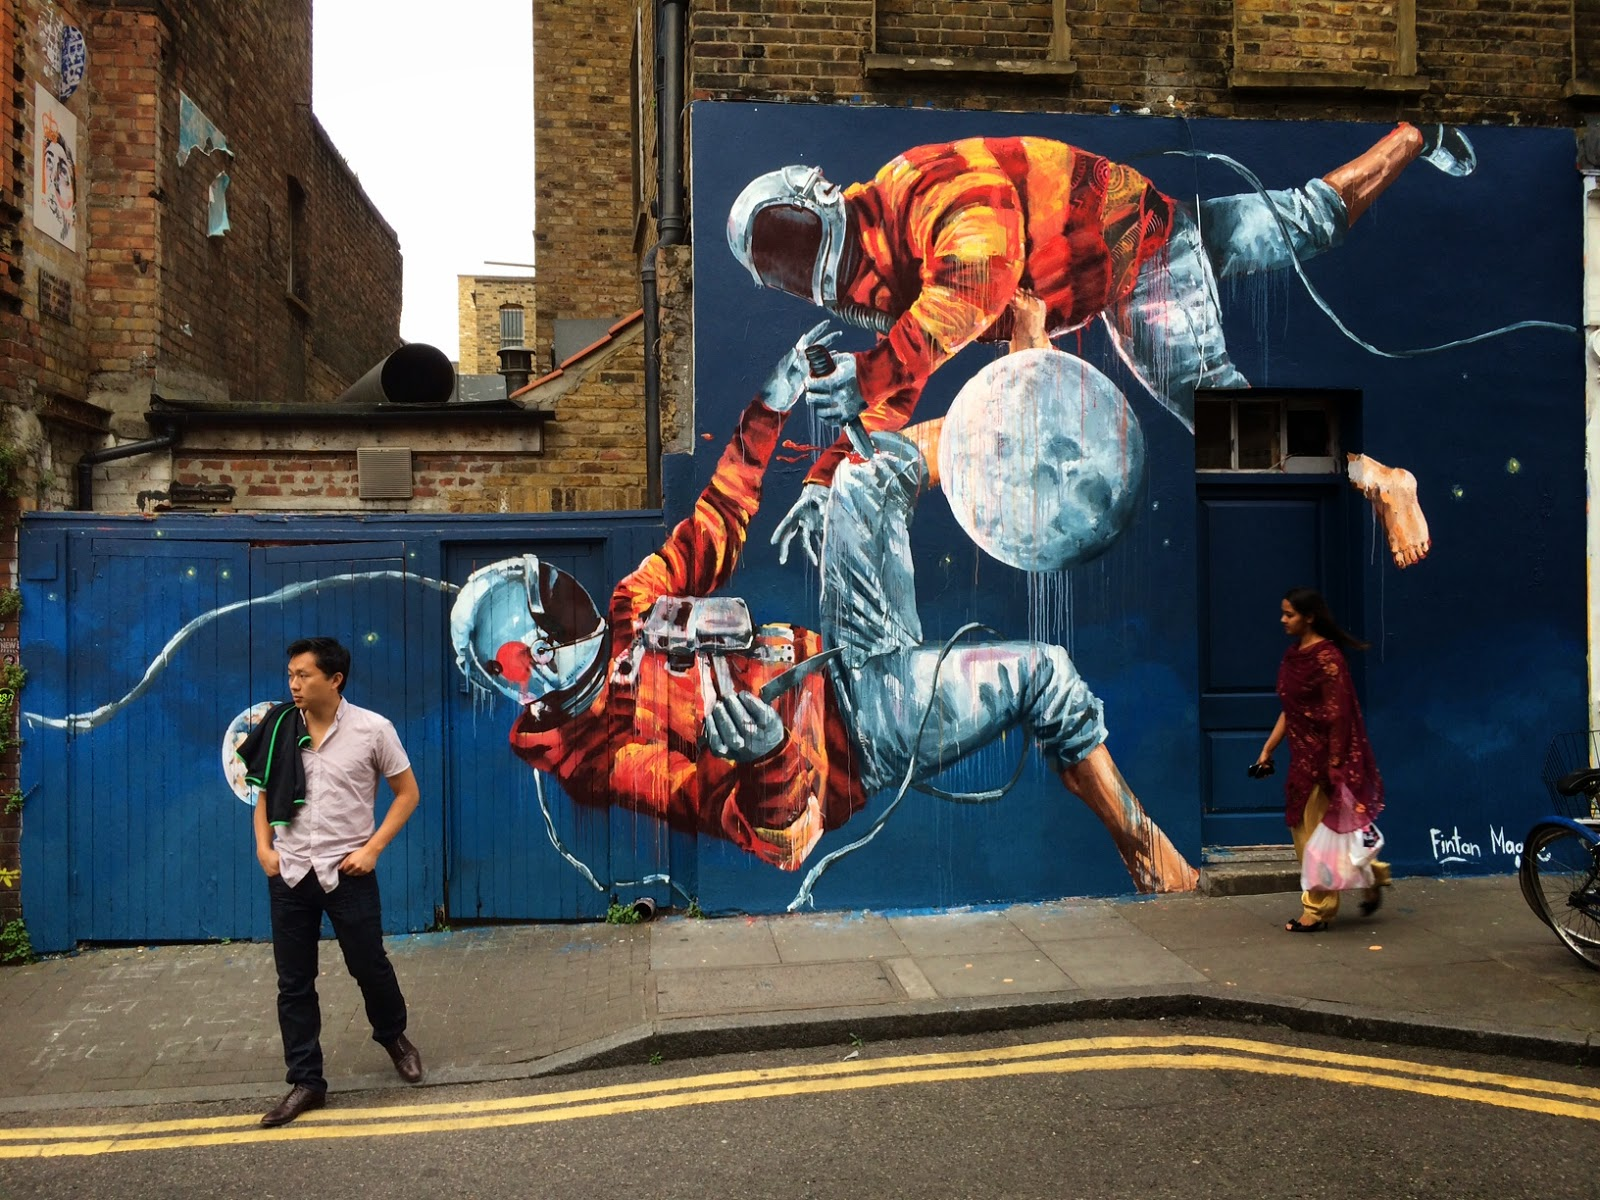 """Fintan Magee """"Two Men Fighting Over the Moon"""" New Mural - London, UK"""